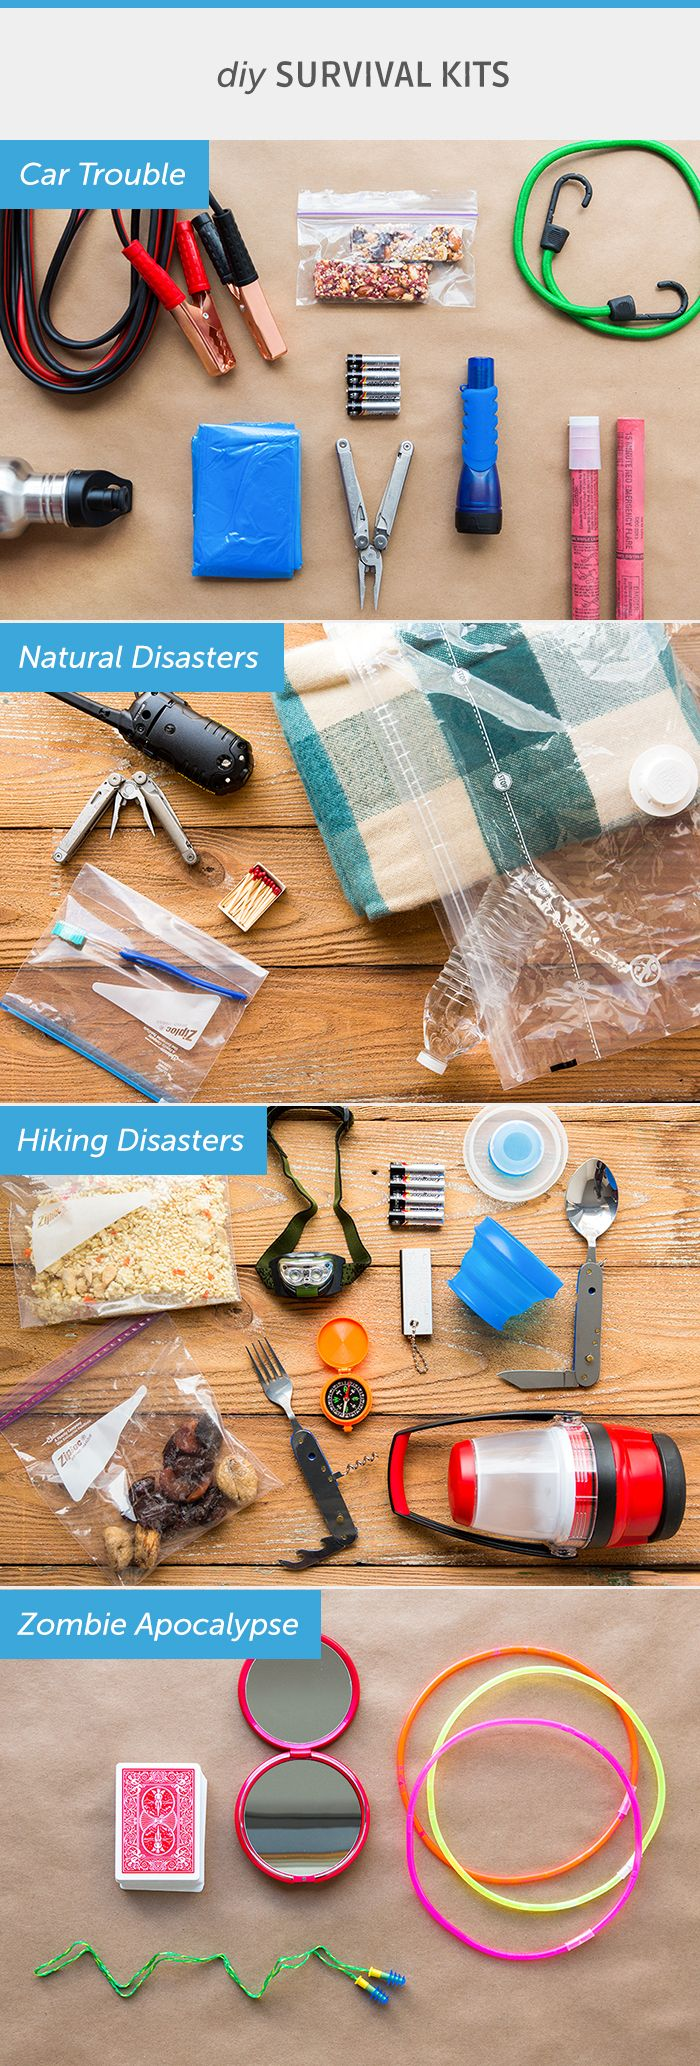 24 best ideas about Survival Kit on Pinterest | Great ...